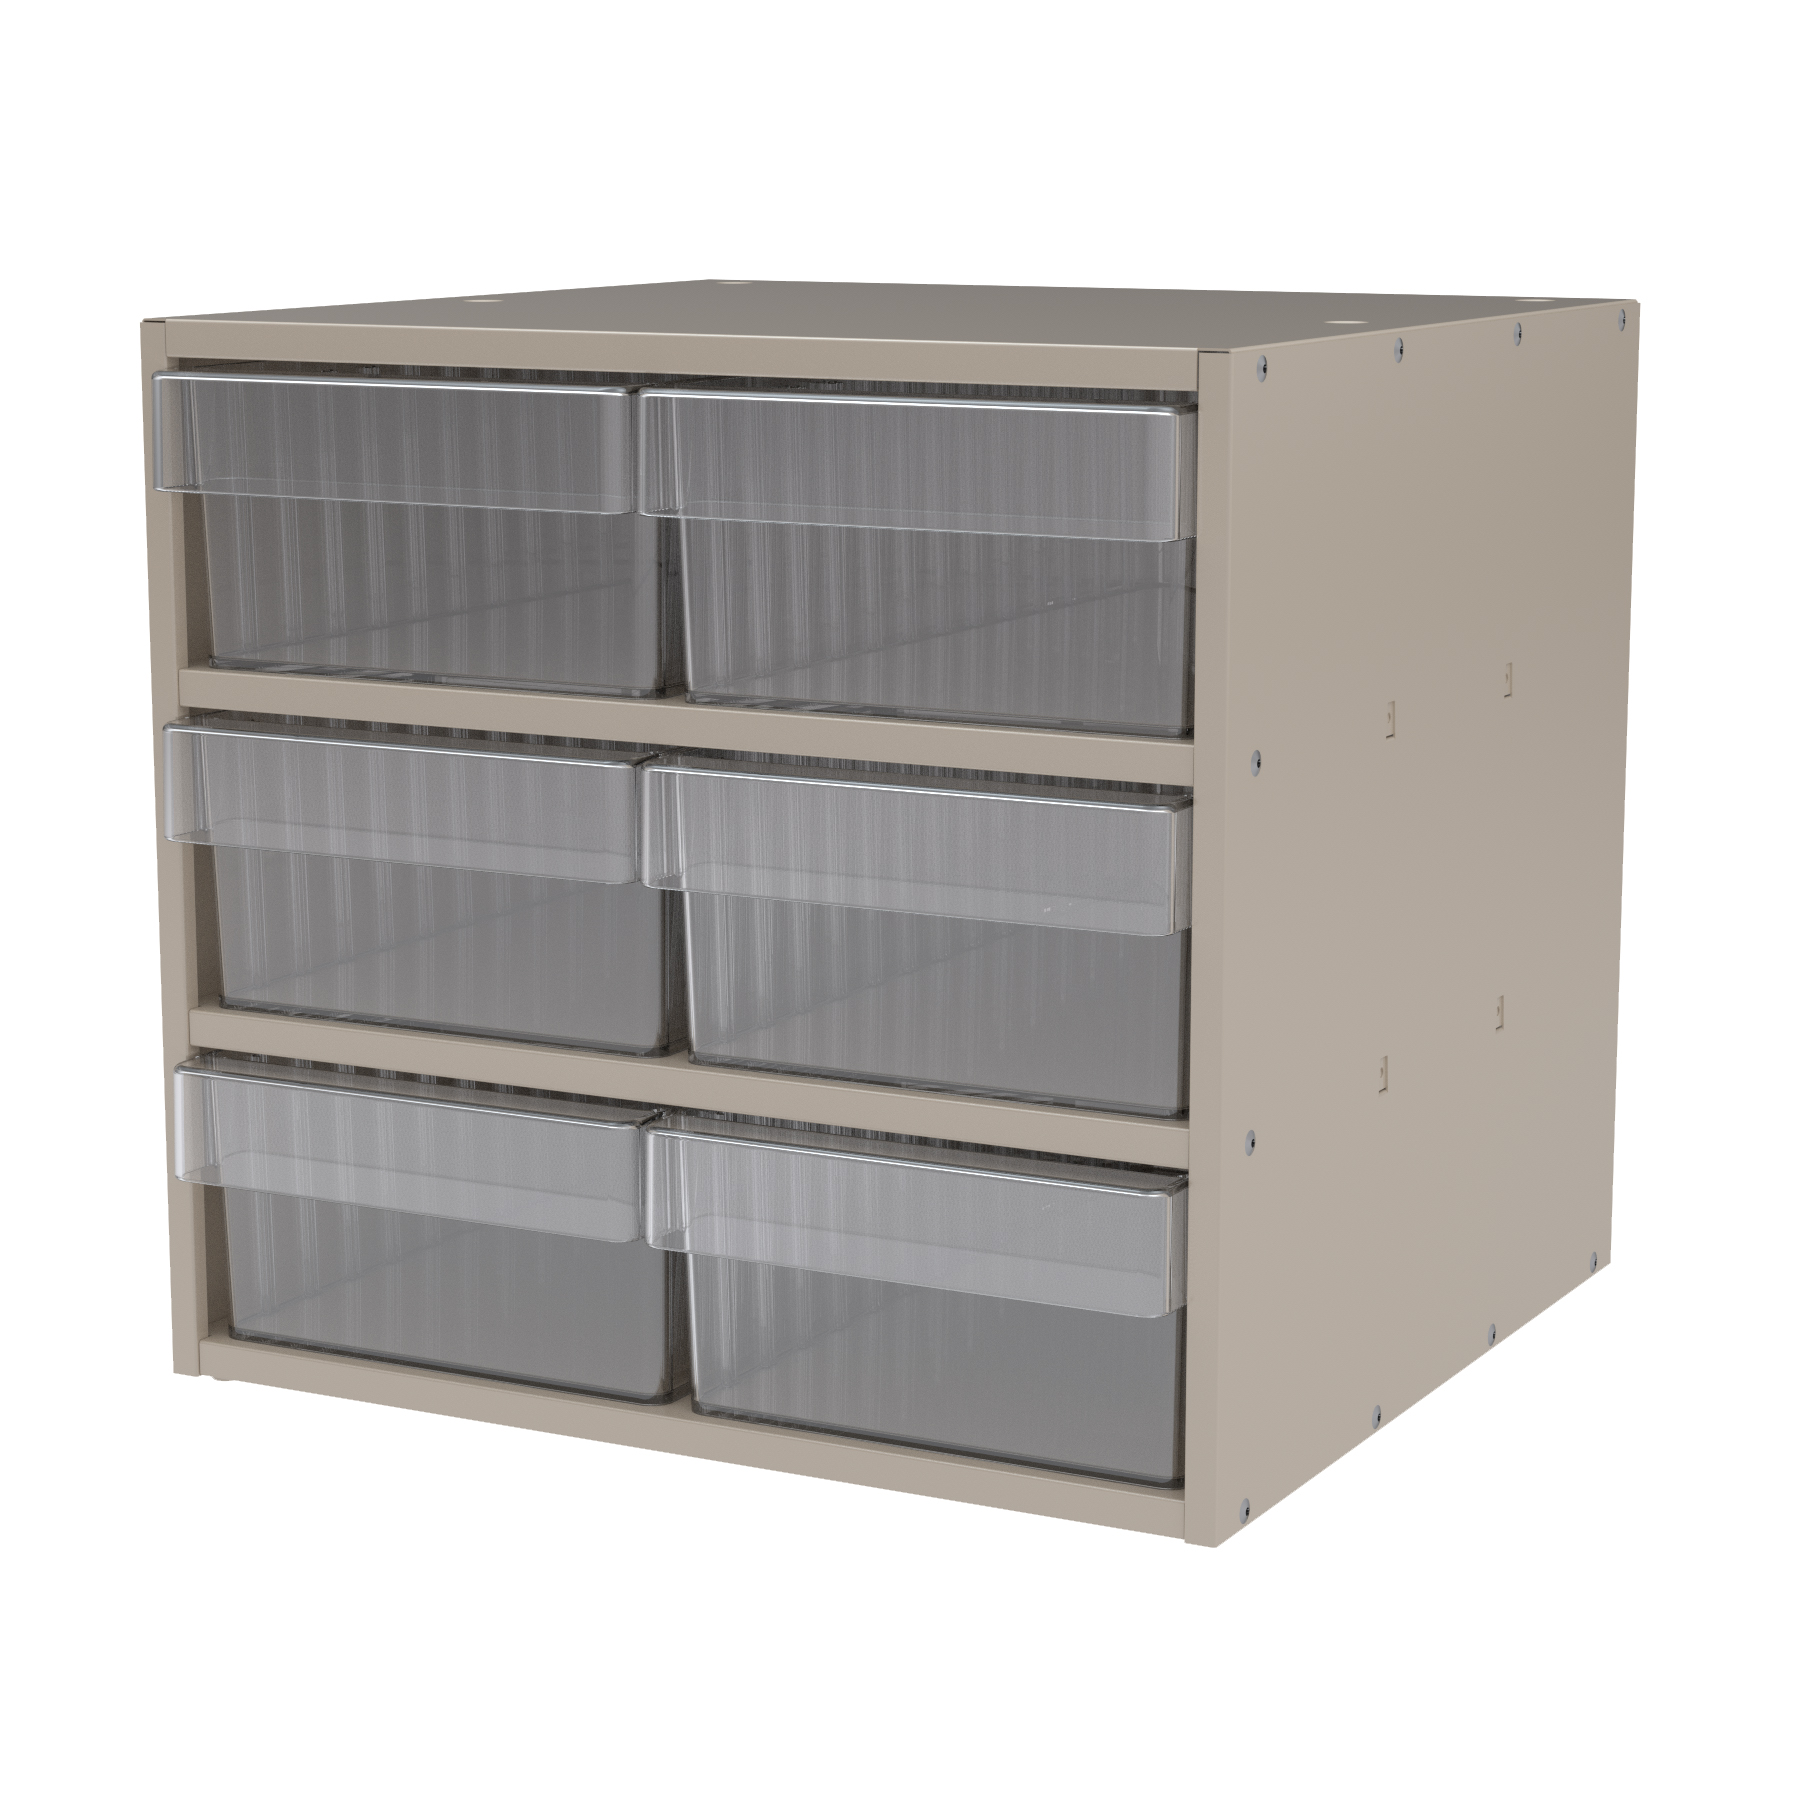 Item DISCONTINUED by Manufacturer.  Modular Cabinet, 18x17x16, 6 Drawers, Putty/Clear (AD1817P88CRY).  This item sold in carton quantities of 1.